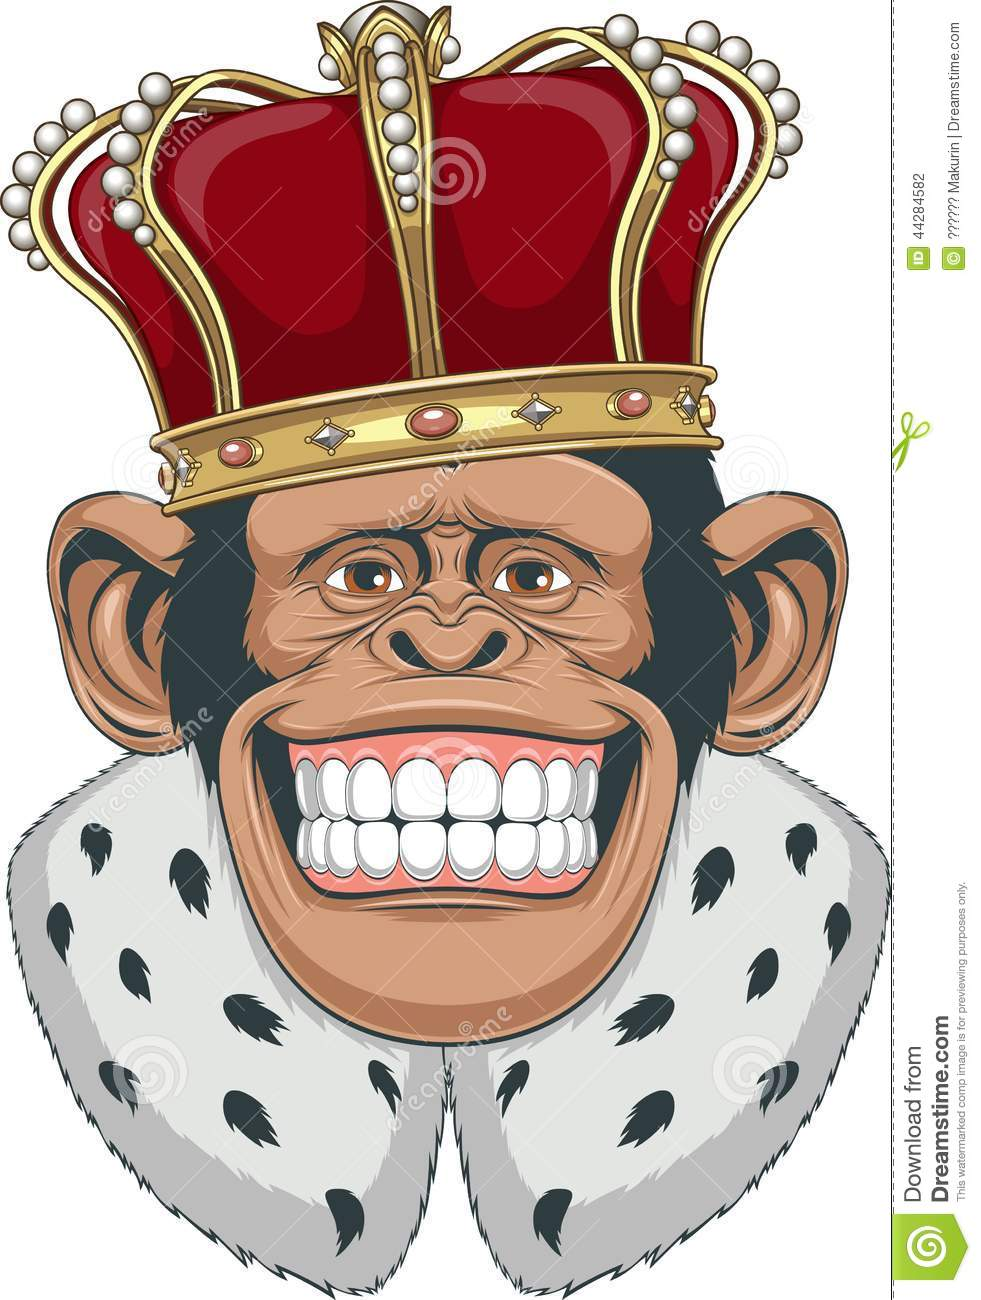 Watercolor Portrait Of Monkey With A Crown Stock Photo ... |Monkey King Crown